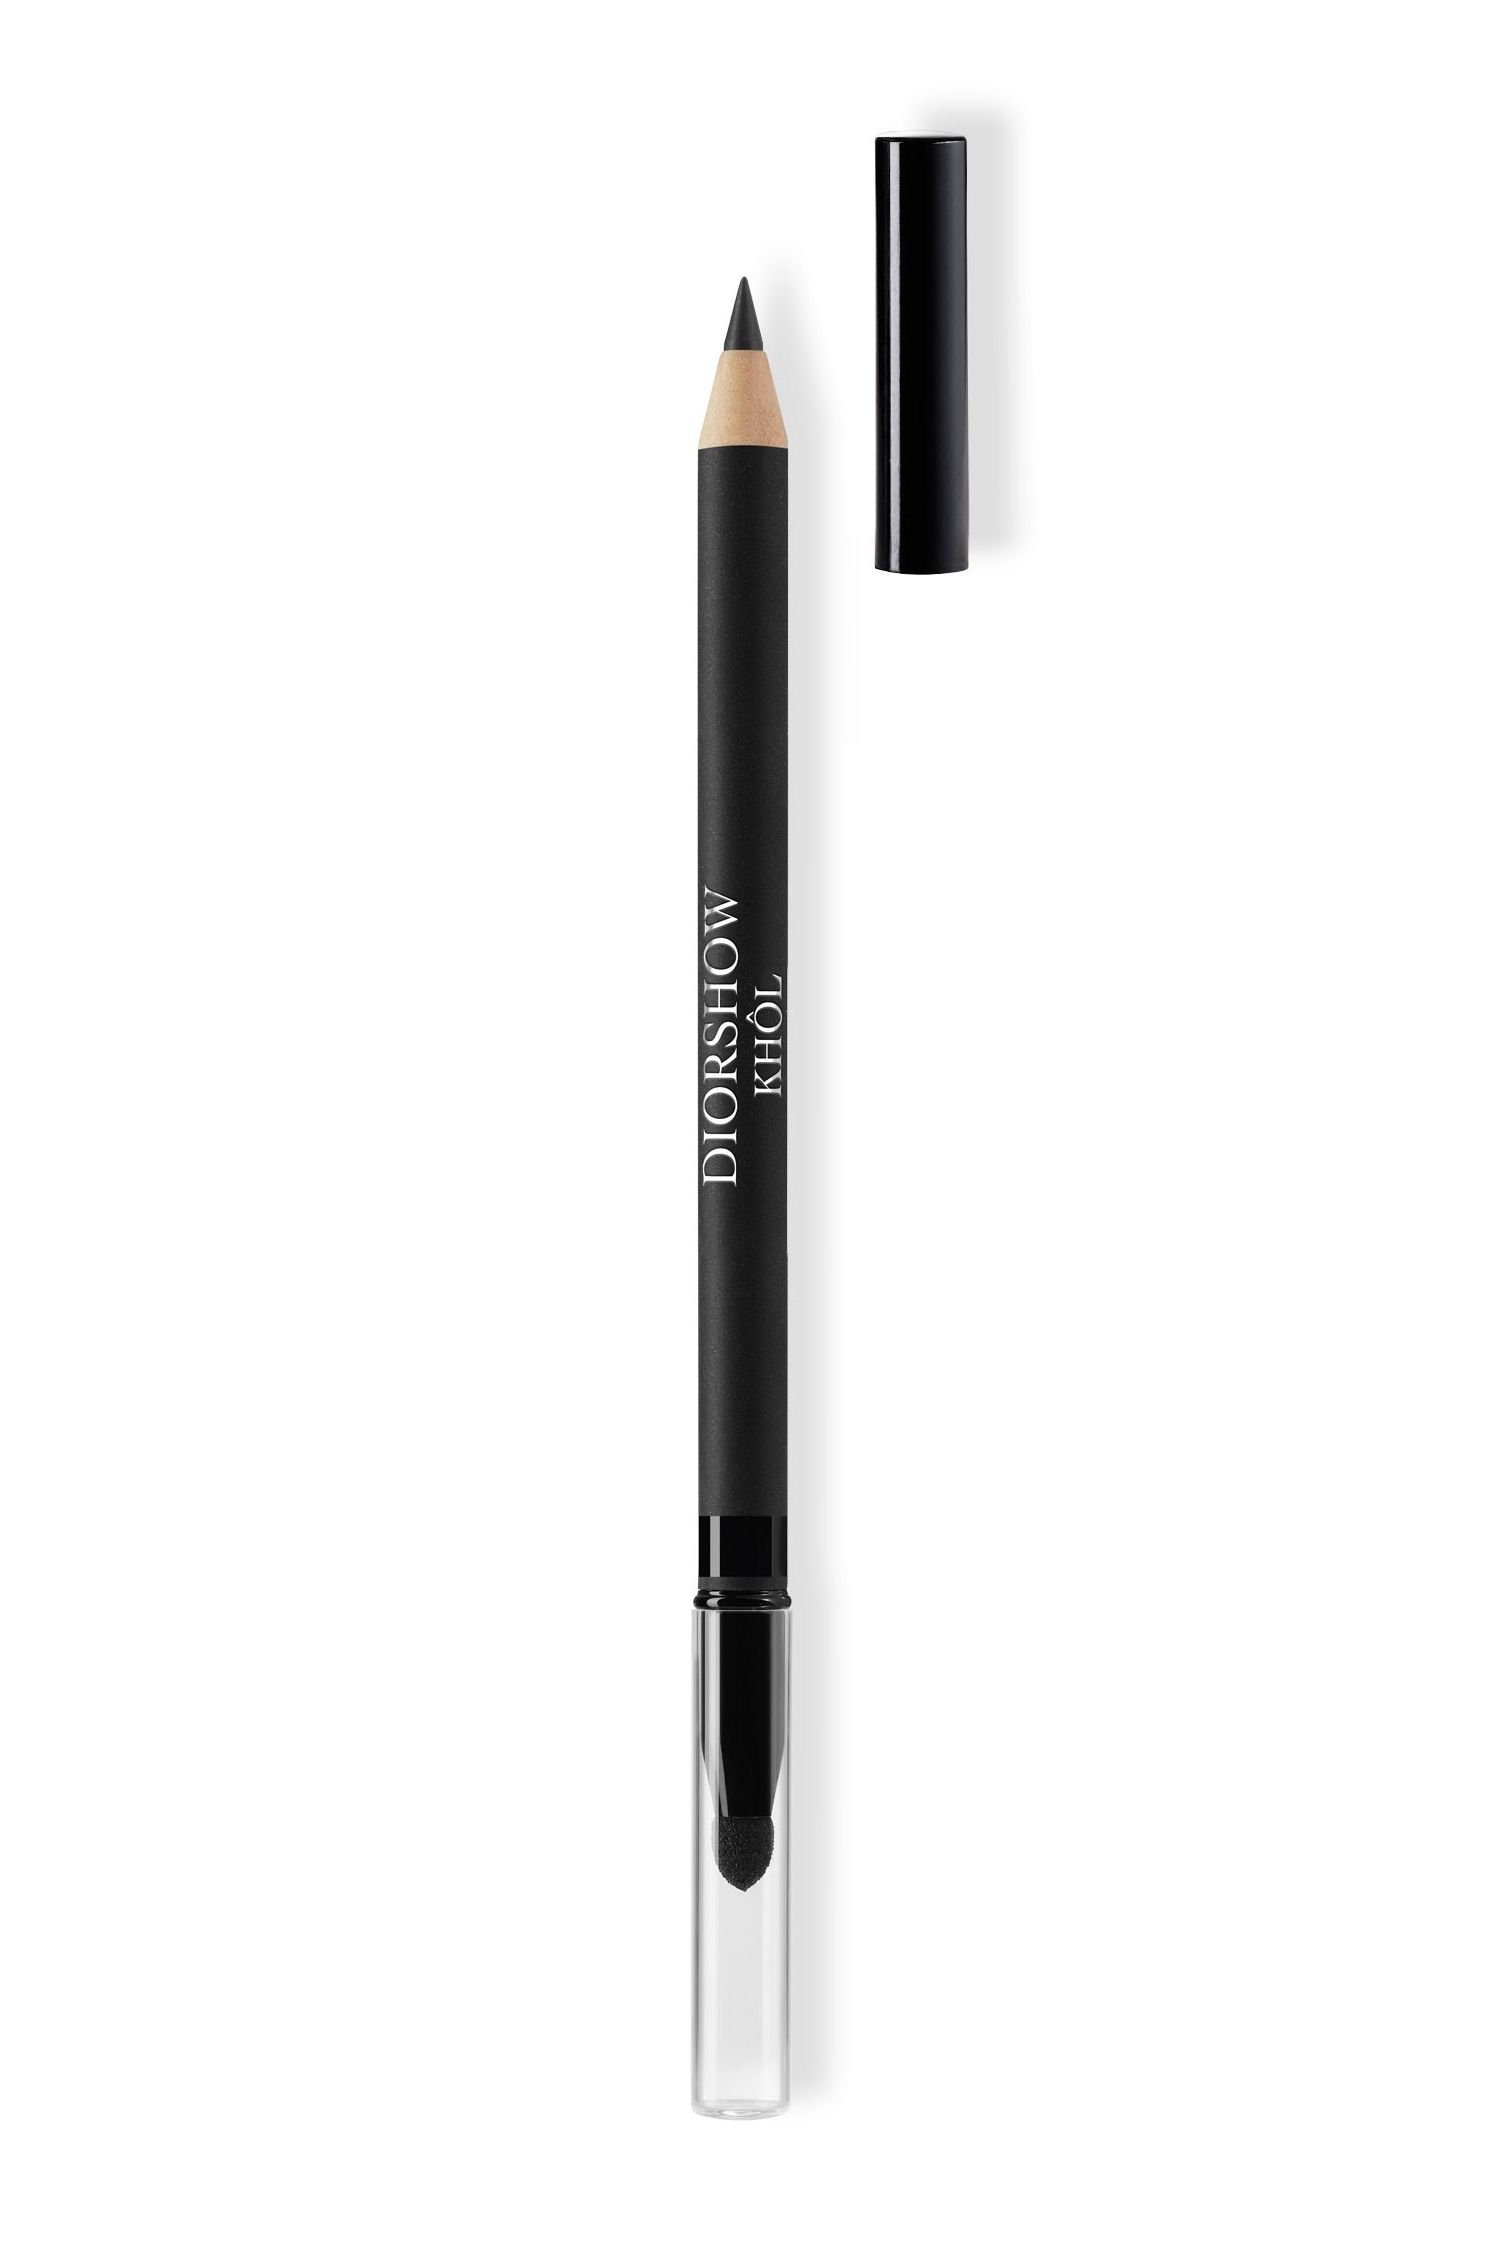 dior diorshow khôl high intensity pencil waterproof hold